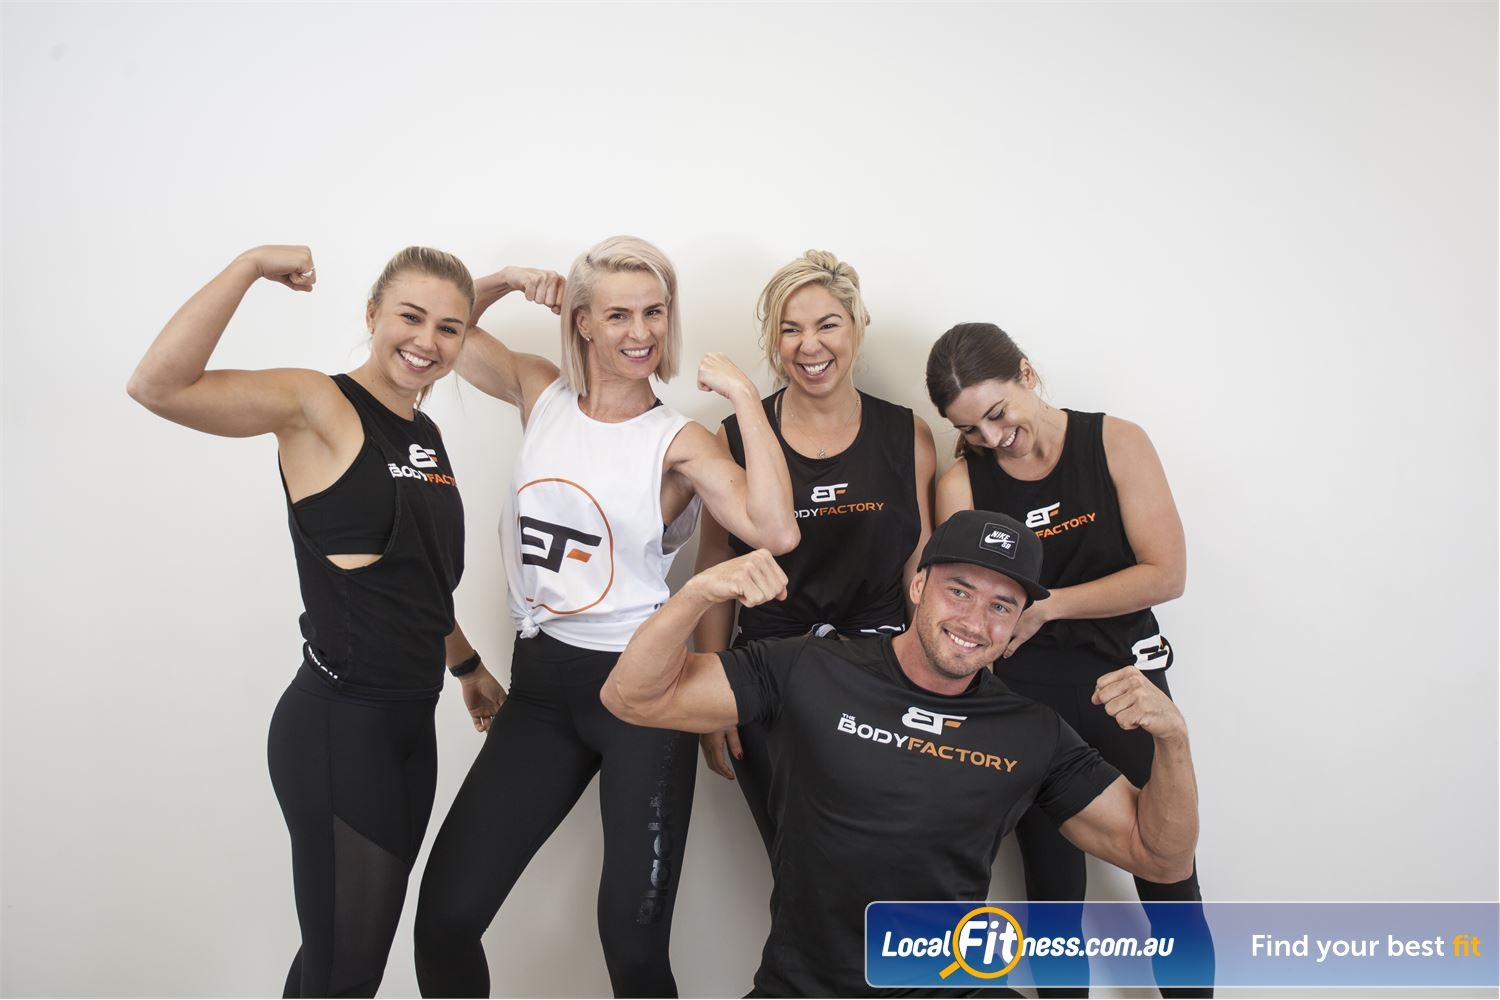 The Body Factory Caringbah Join the Body Factory Caringbah gym family experience our team culture.